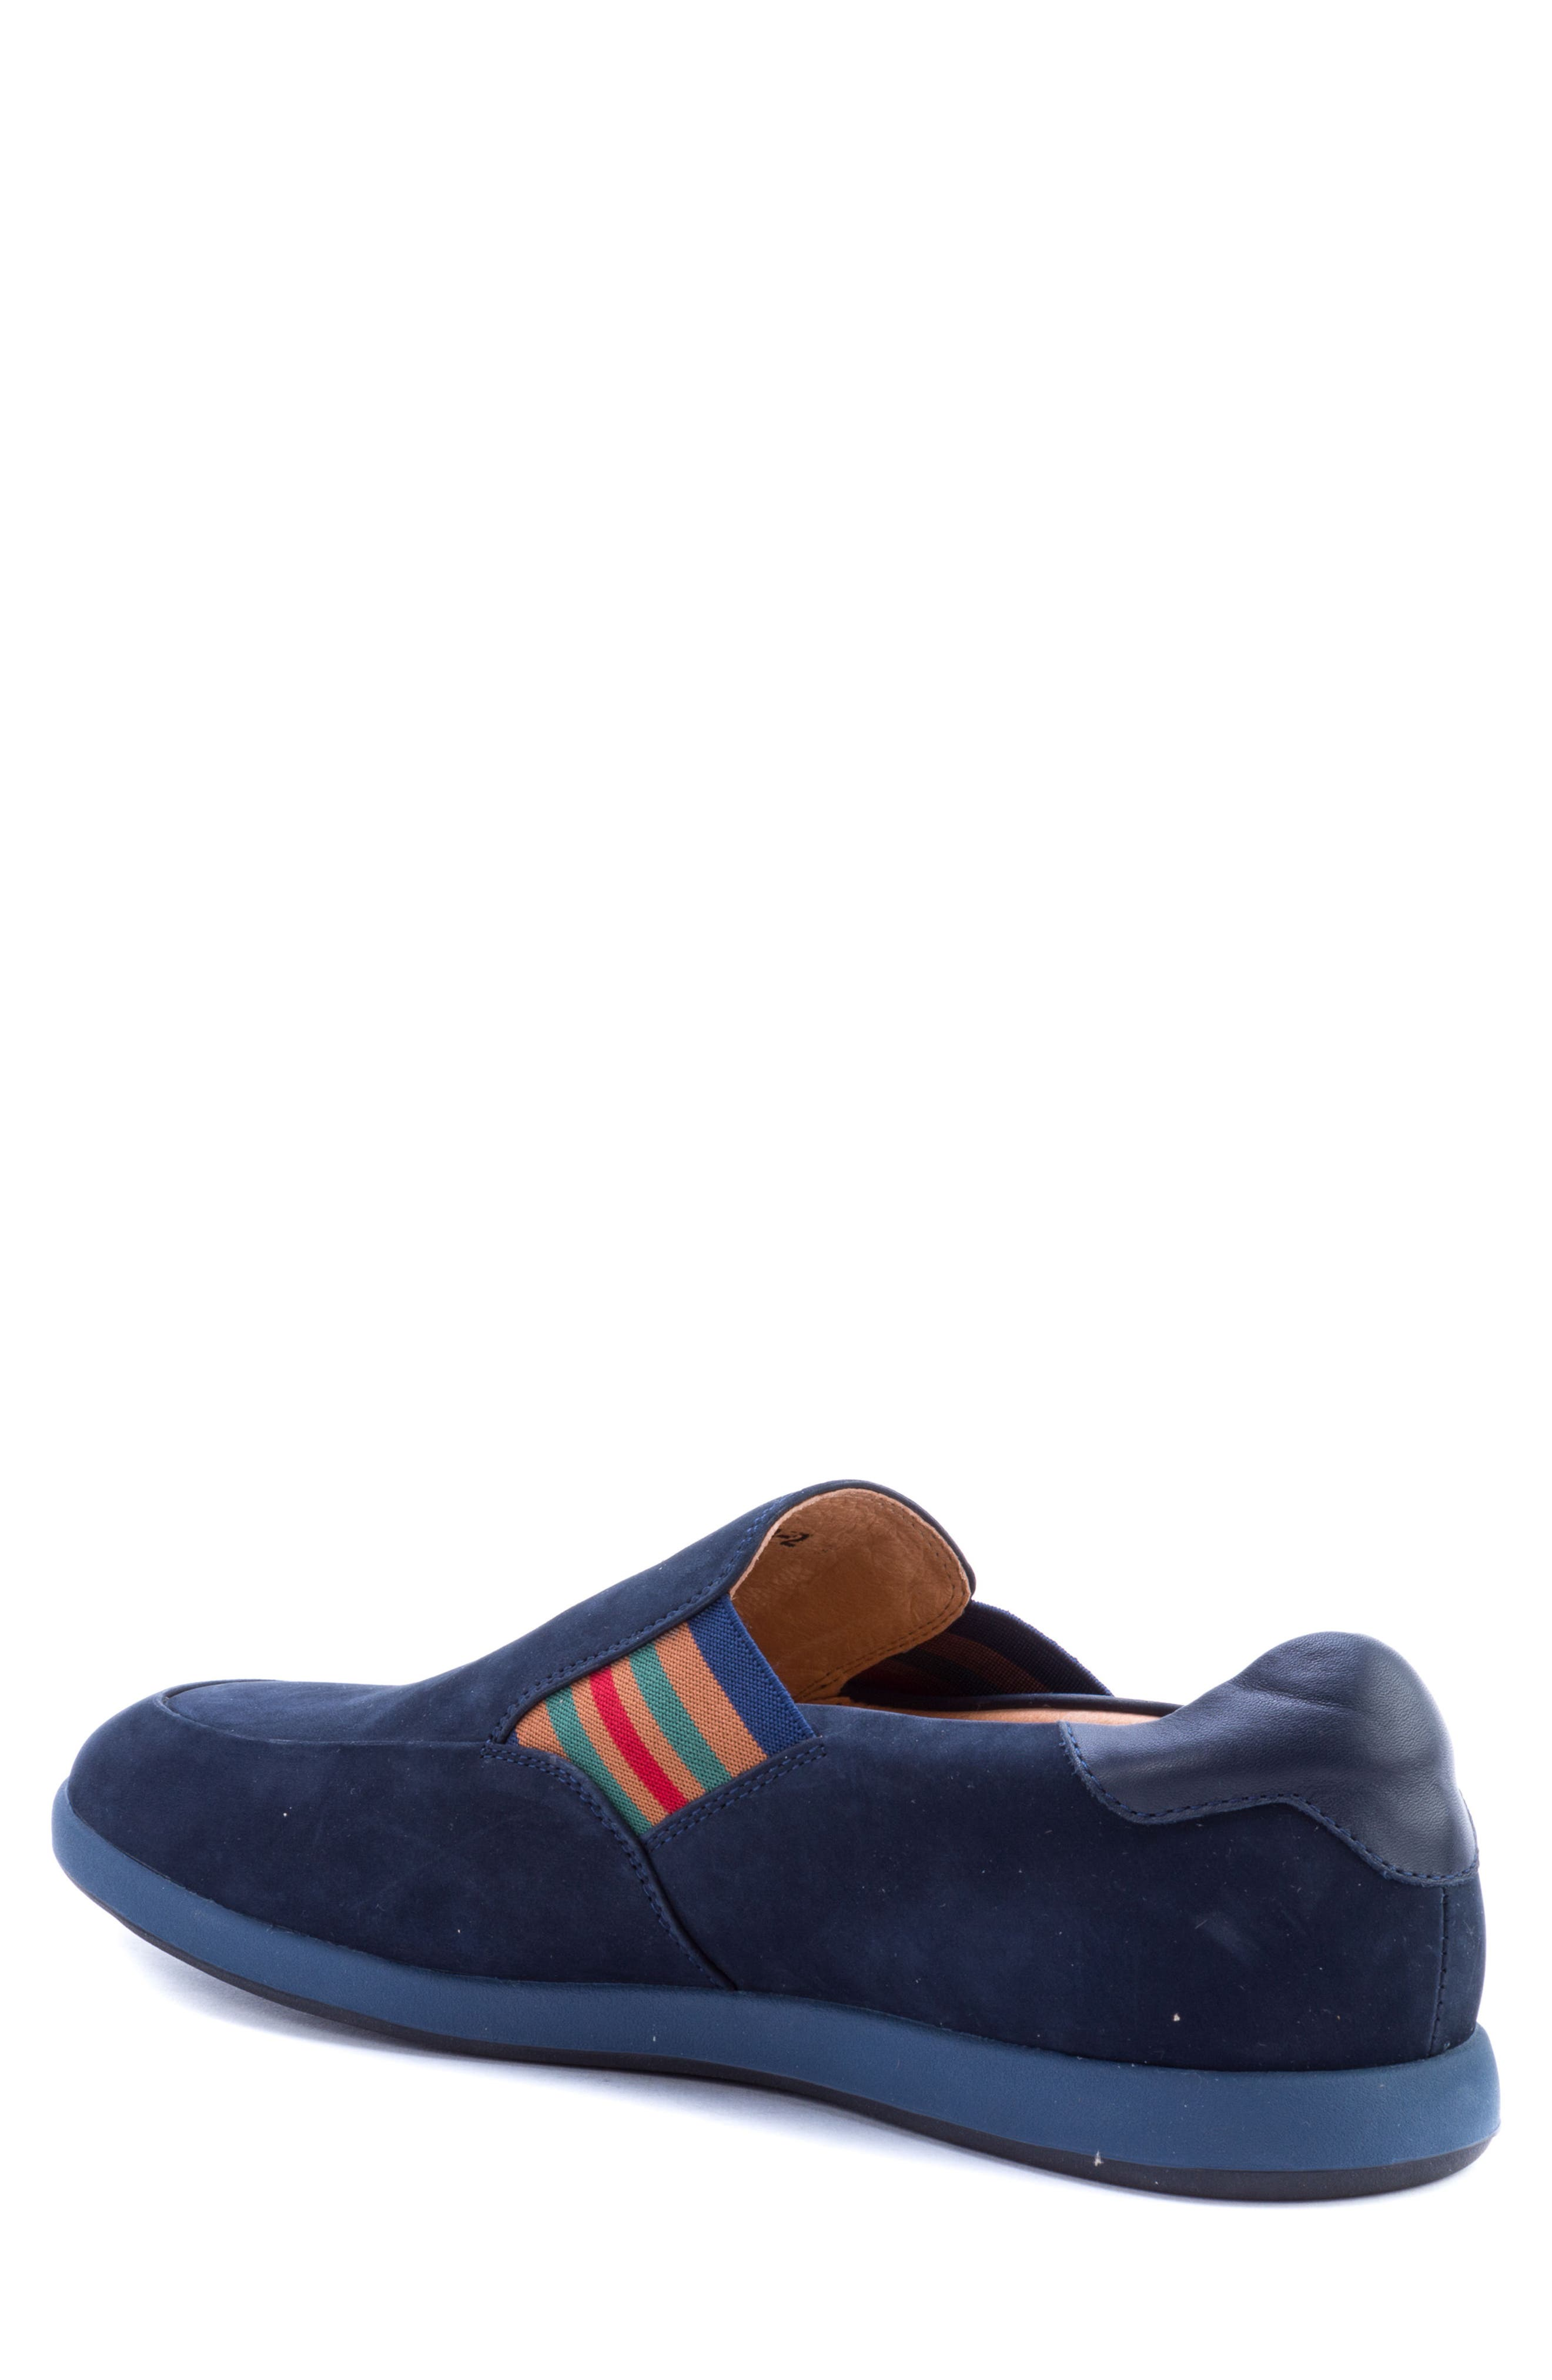 Avenida Striped Slip-On,                             Alternate thumbnail 2, color,                             Navy Suede